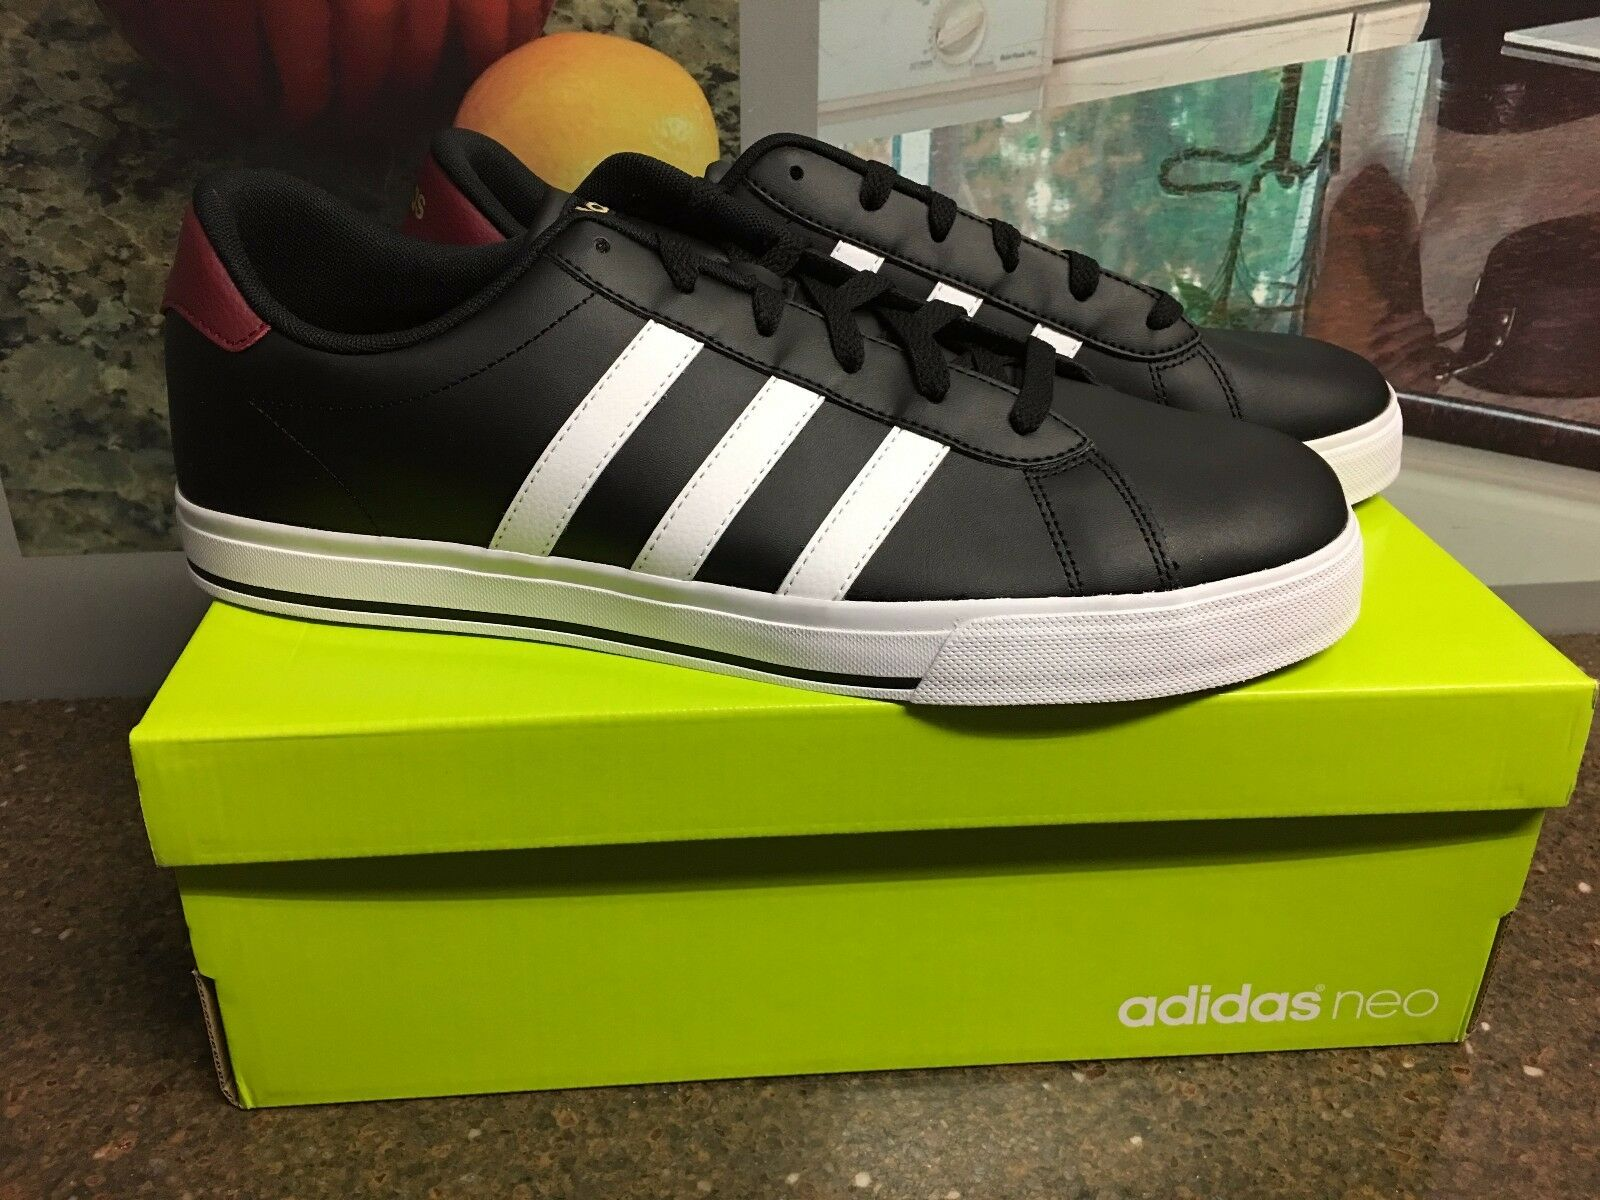 adidas NEO Daily Men's Shoes Sneakers Black / White Soft Leather NIB Comfortable